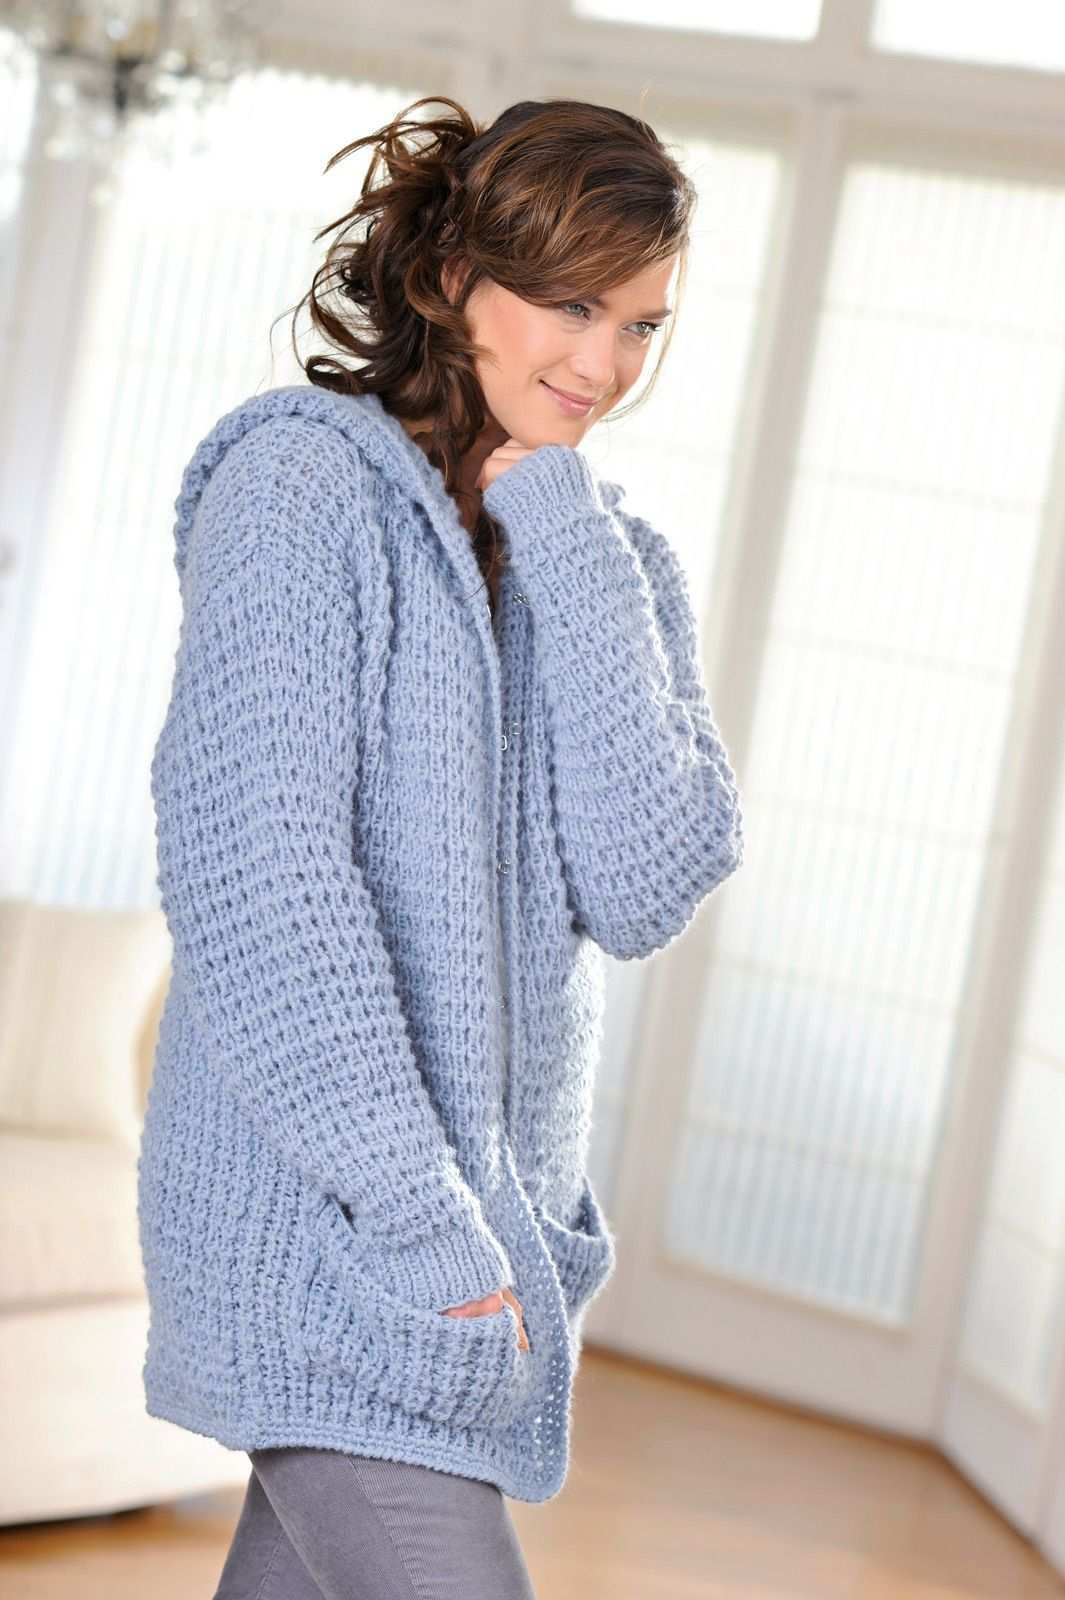 Gemutliche Kapuzenjacke Mit Taschen Kostenlose Strickanleitung Strickjacke Selber Stricken Pullover Stricken Kapuze Stricken